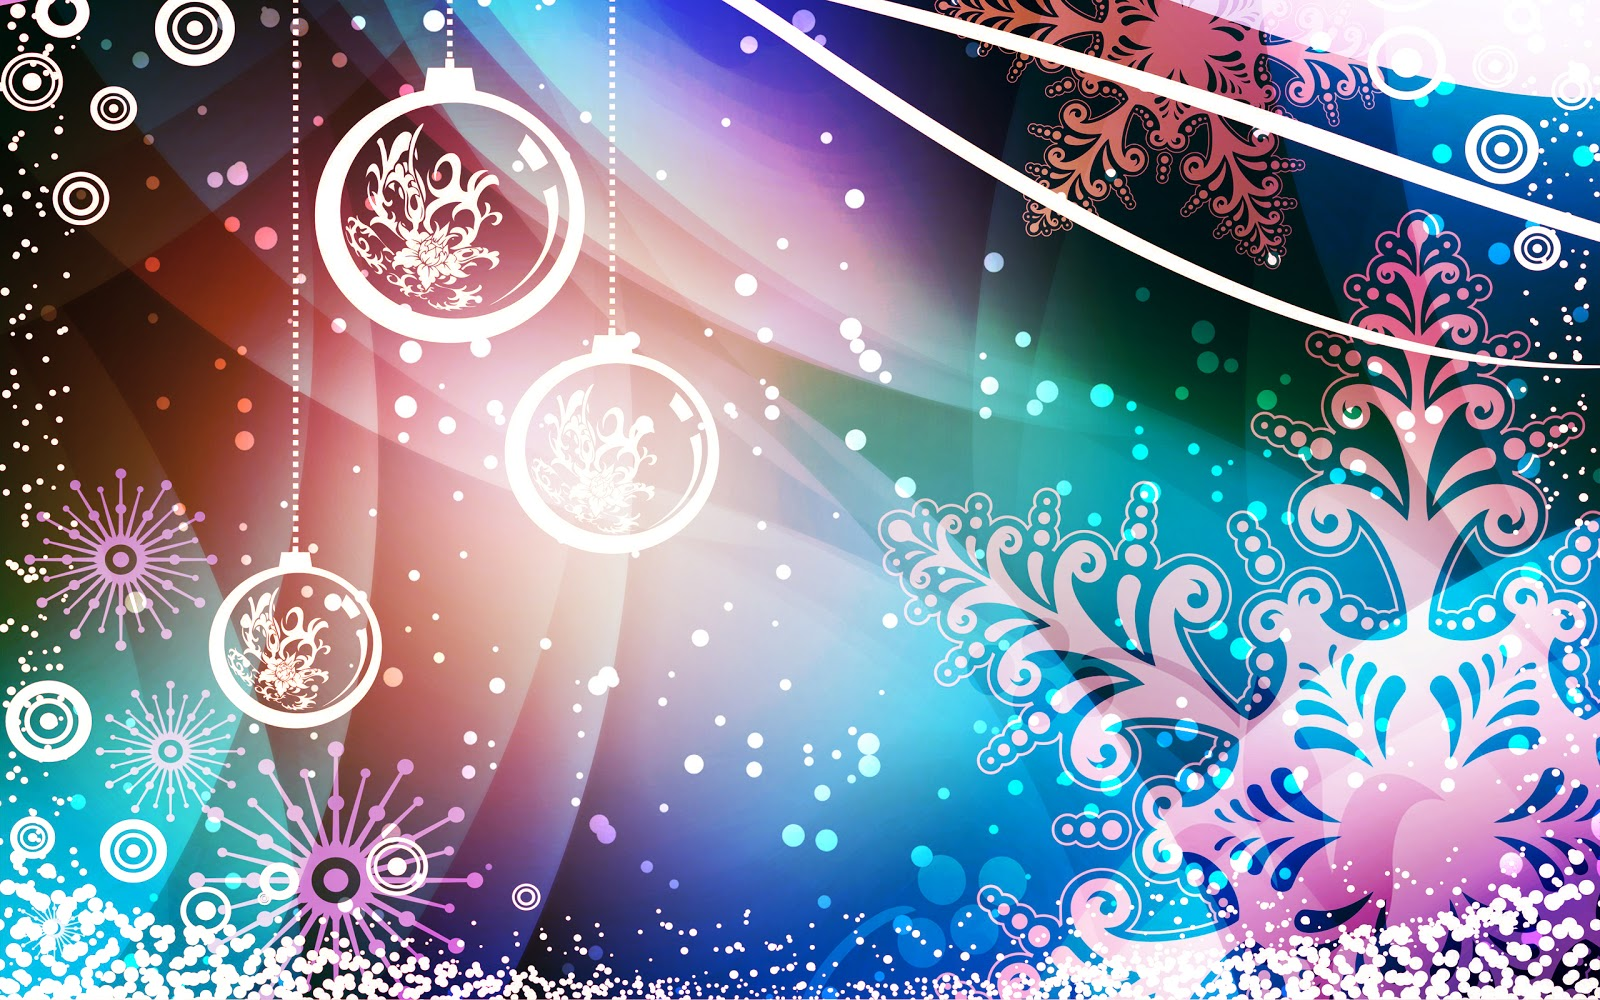 merry christmas 2013 wallpaper computer wallpaper